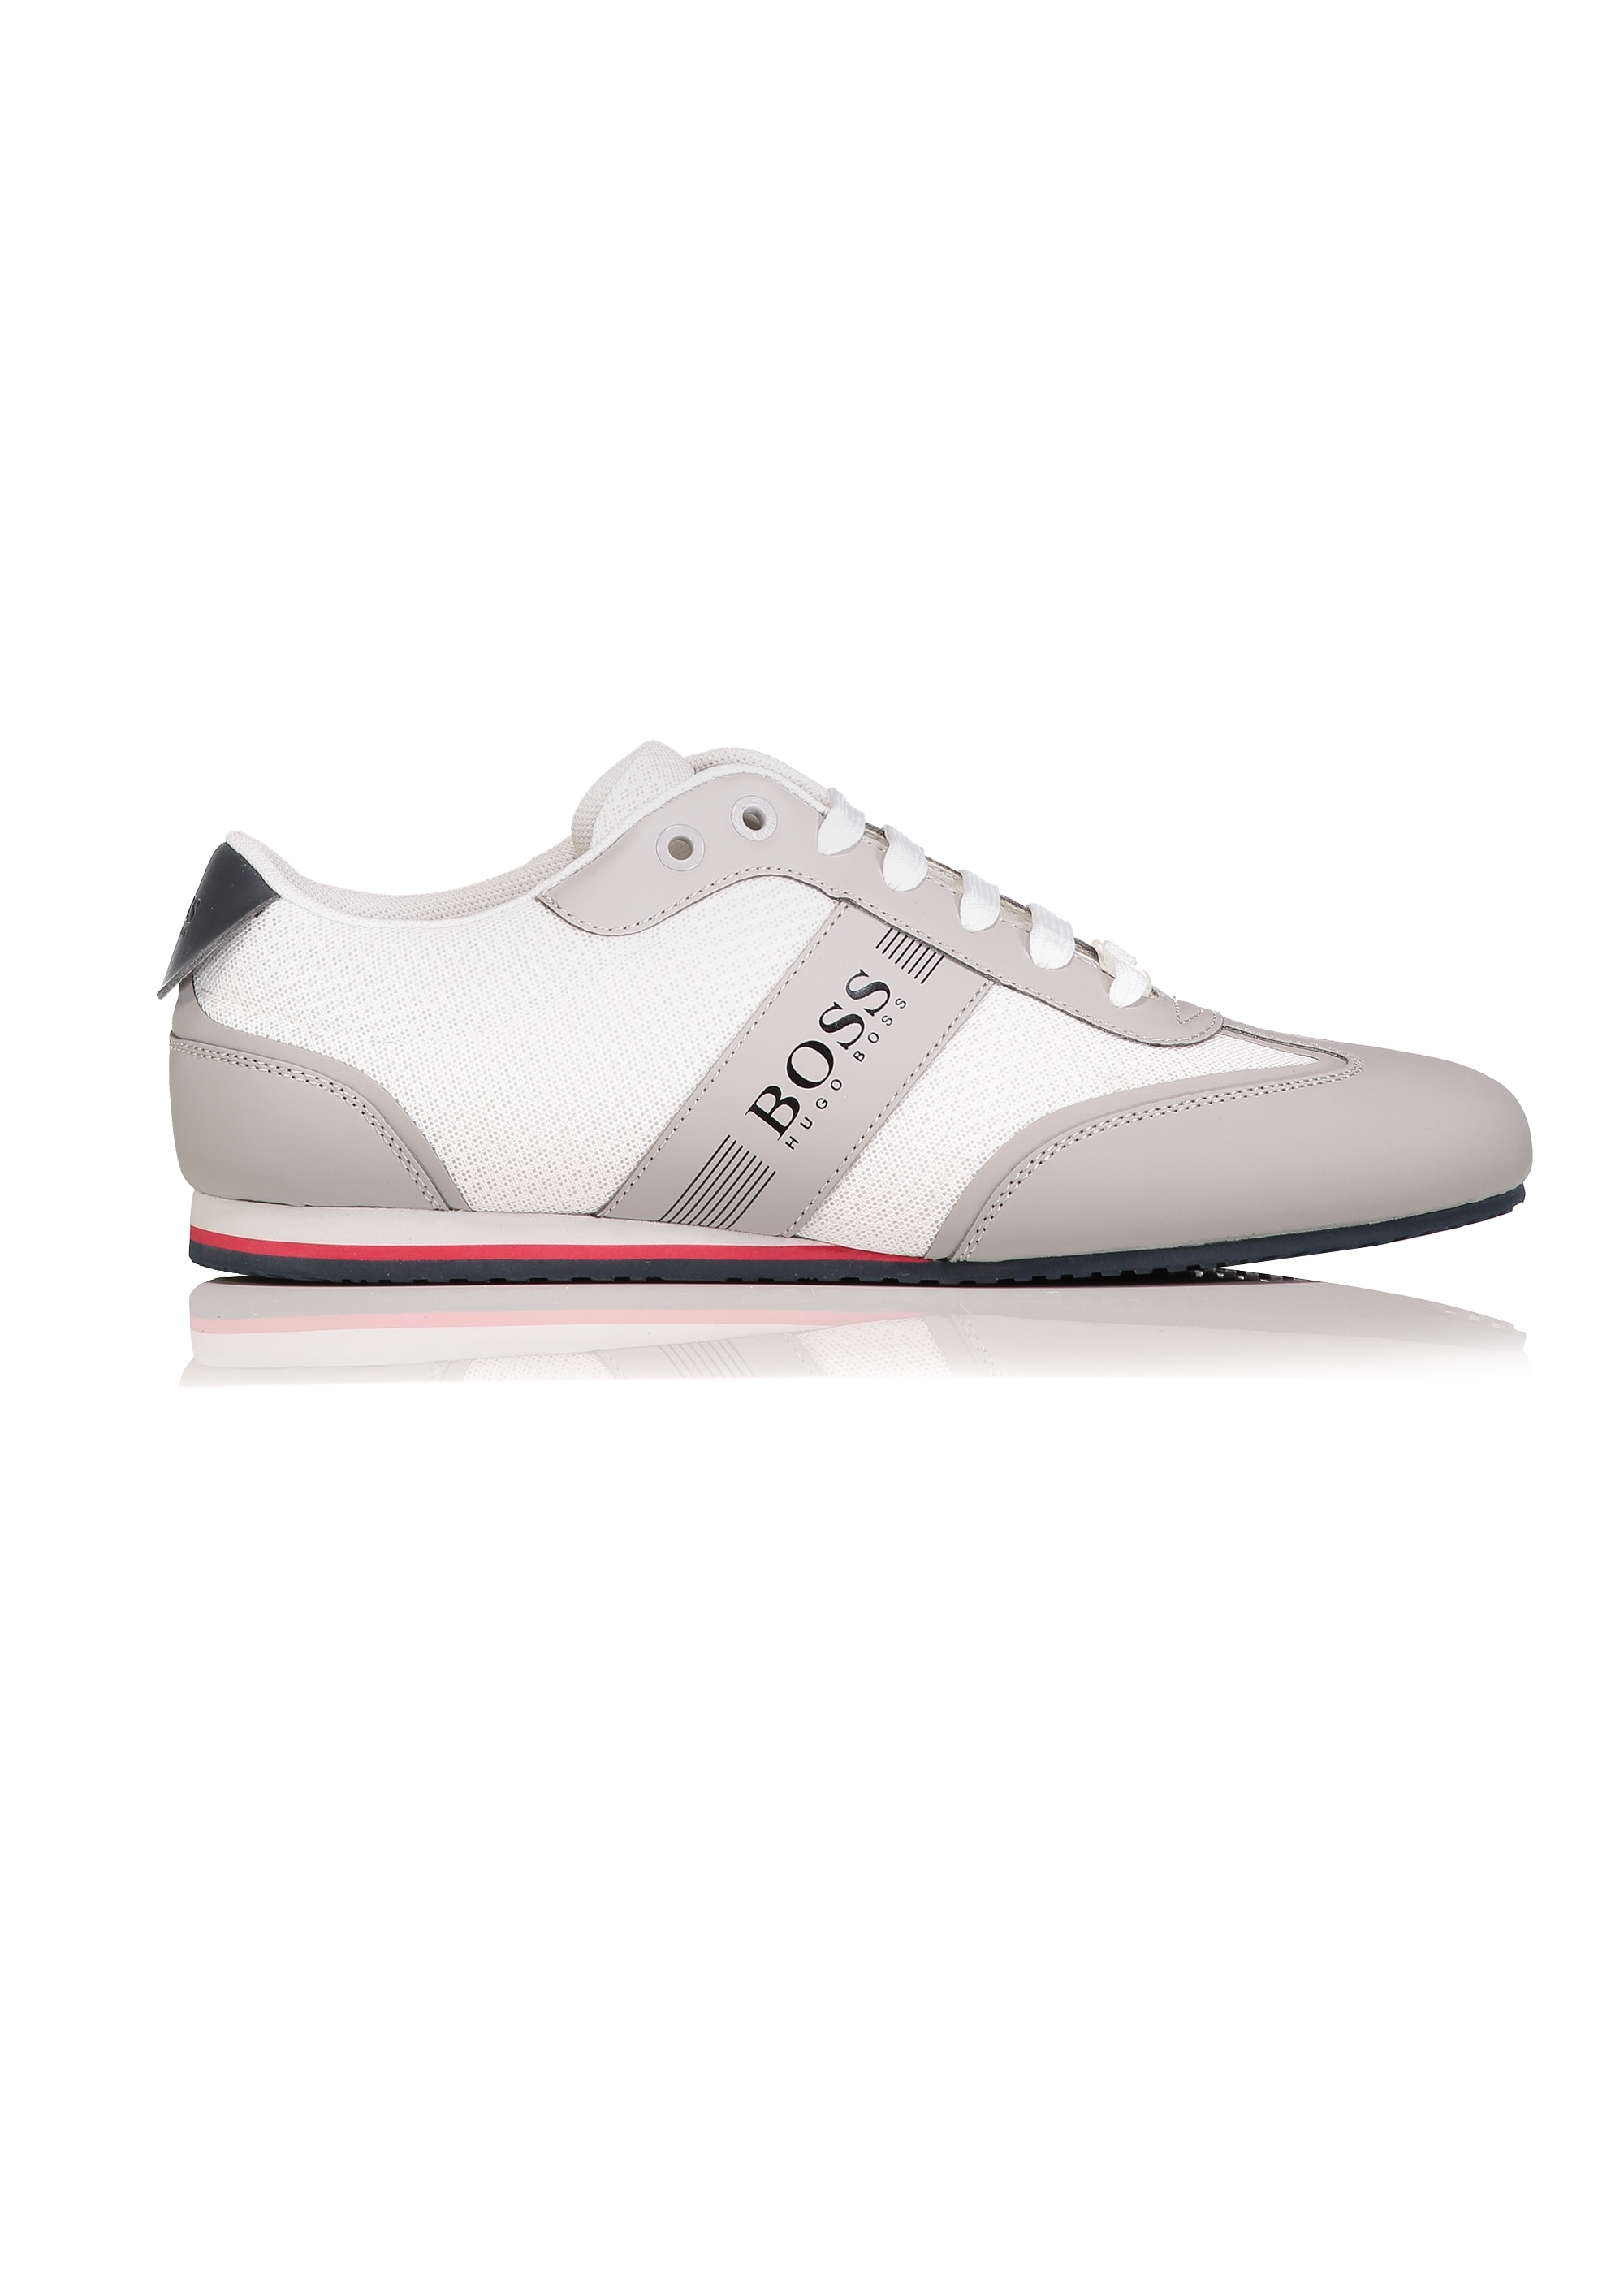 order online shop for official limpid in sight BOSS Lighter Low Trainers - White